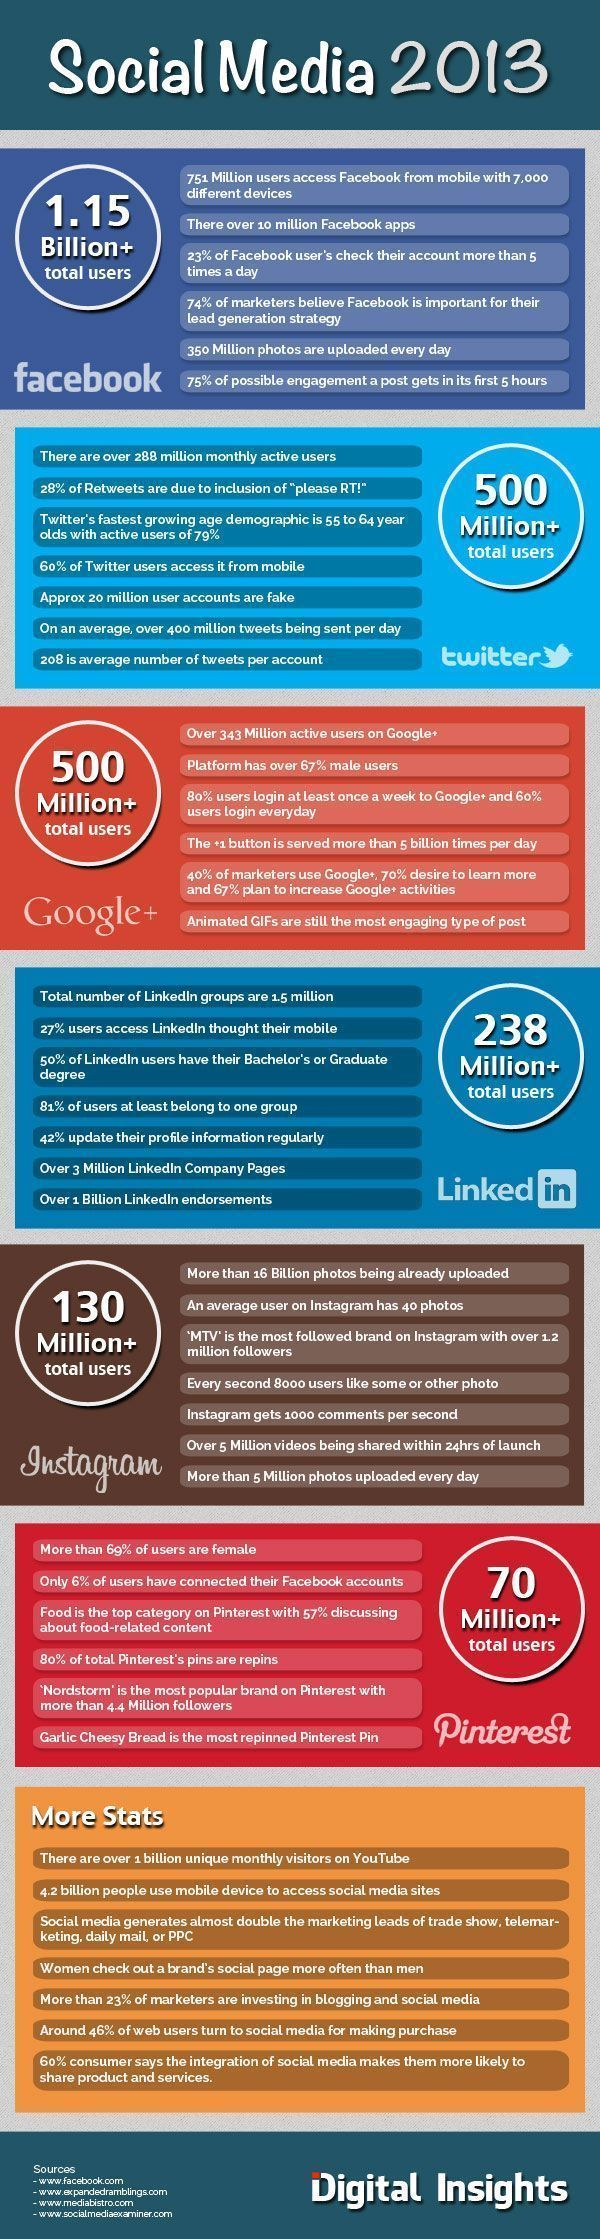 #Infographic: 45 SOcial Media Stats of 2013